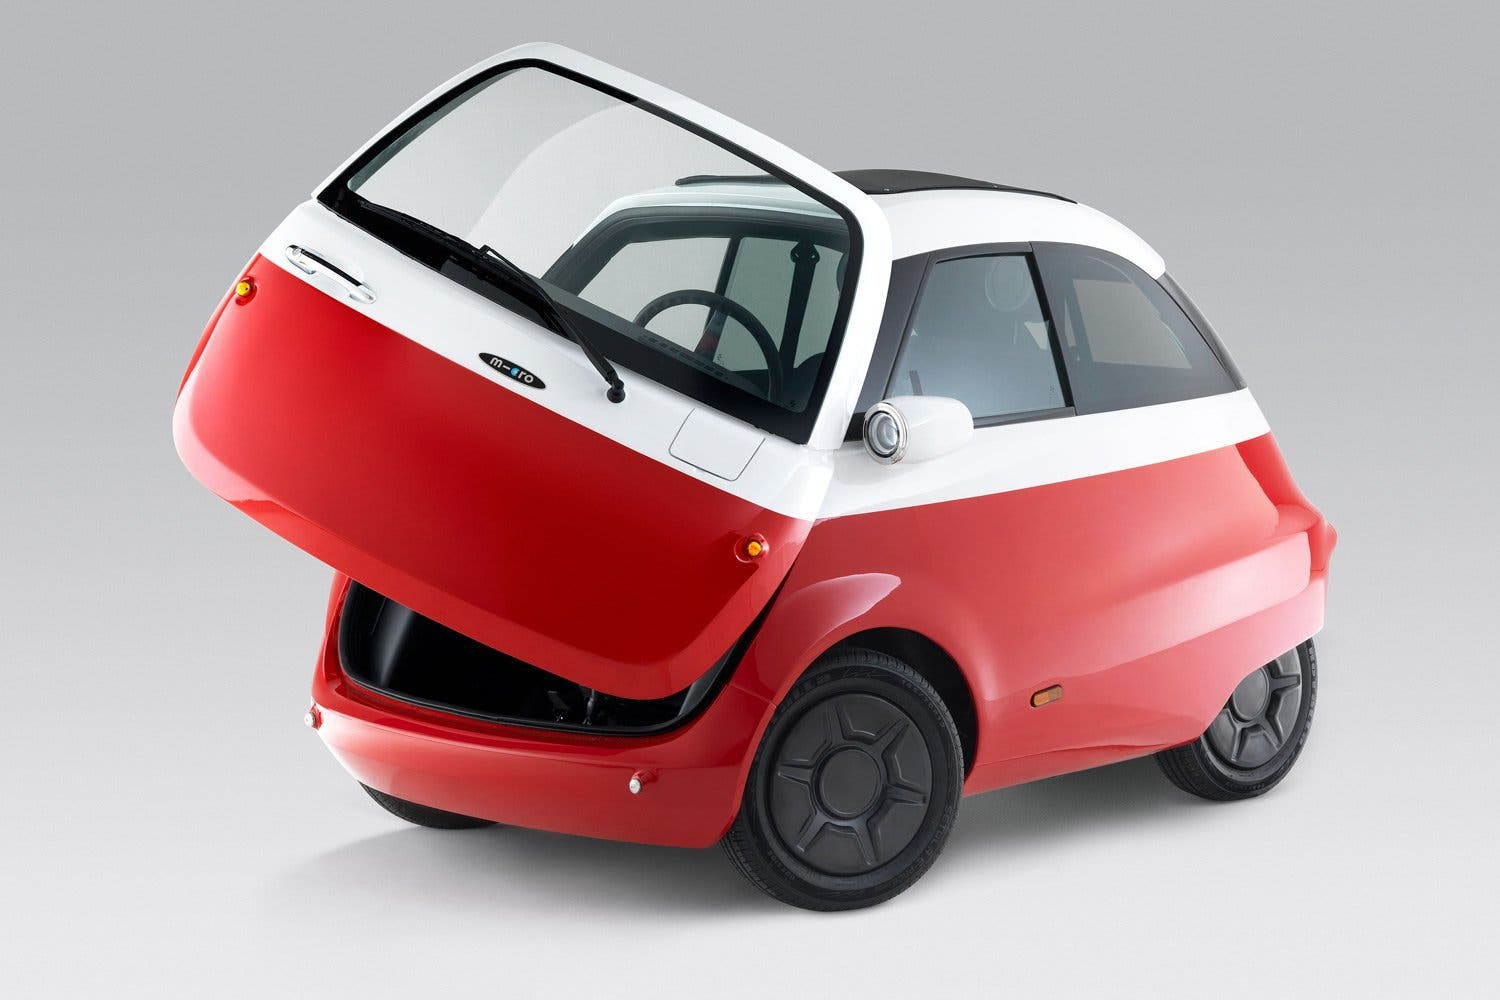 microlino-car-red-front